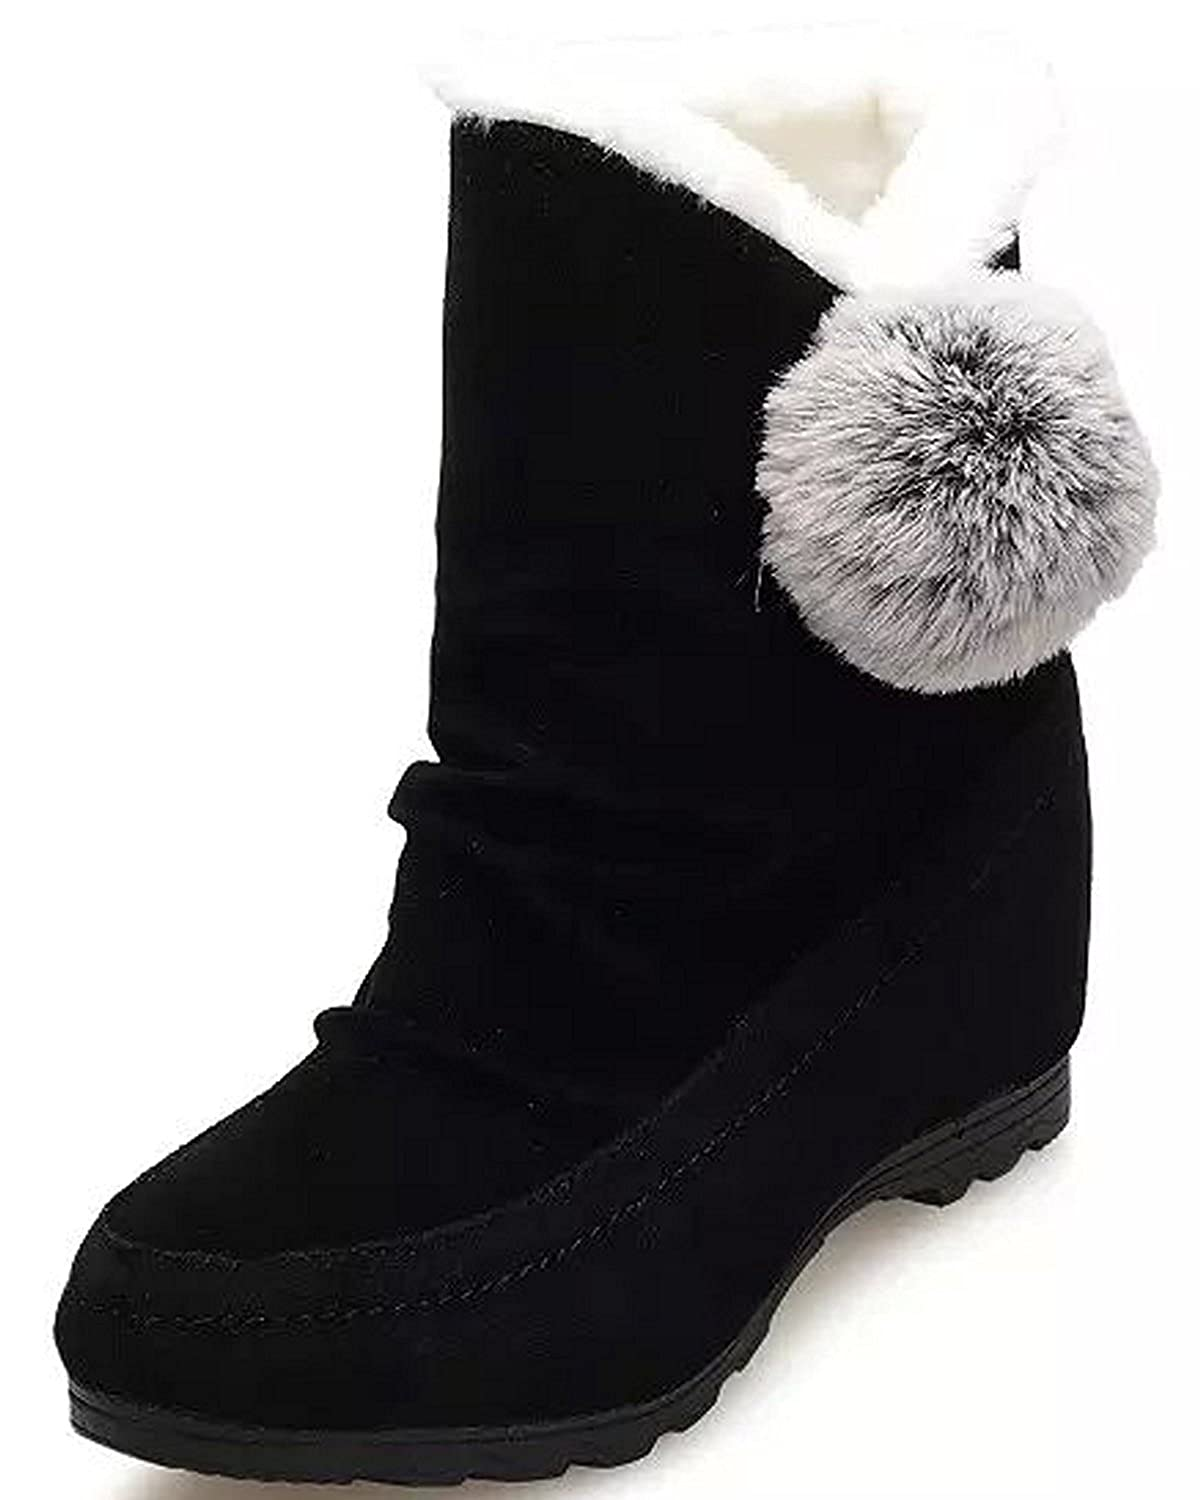 New Womens SOLE Black Fionn Suede Boots Mid-Calf Pull On